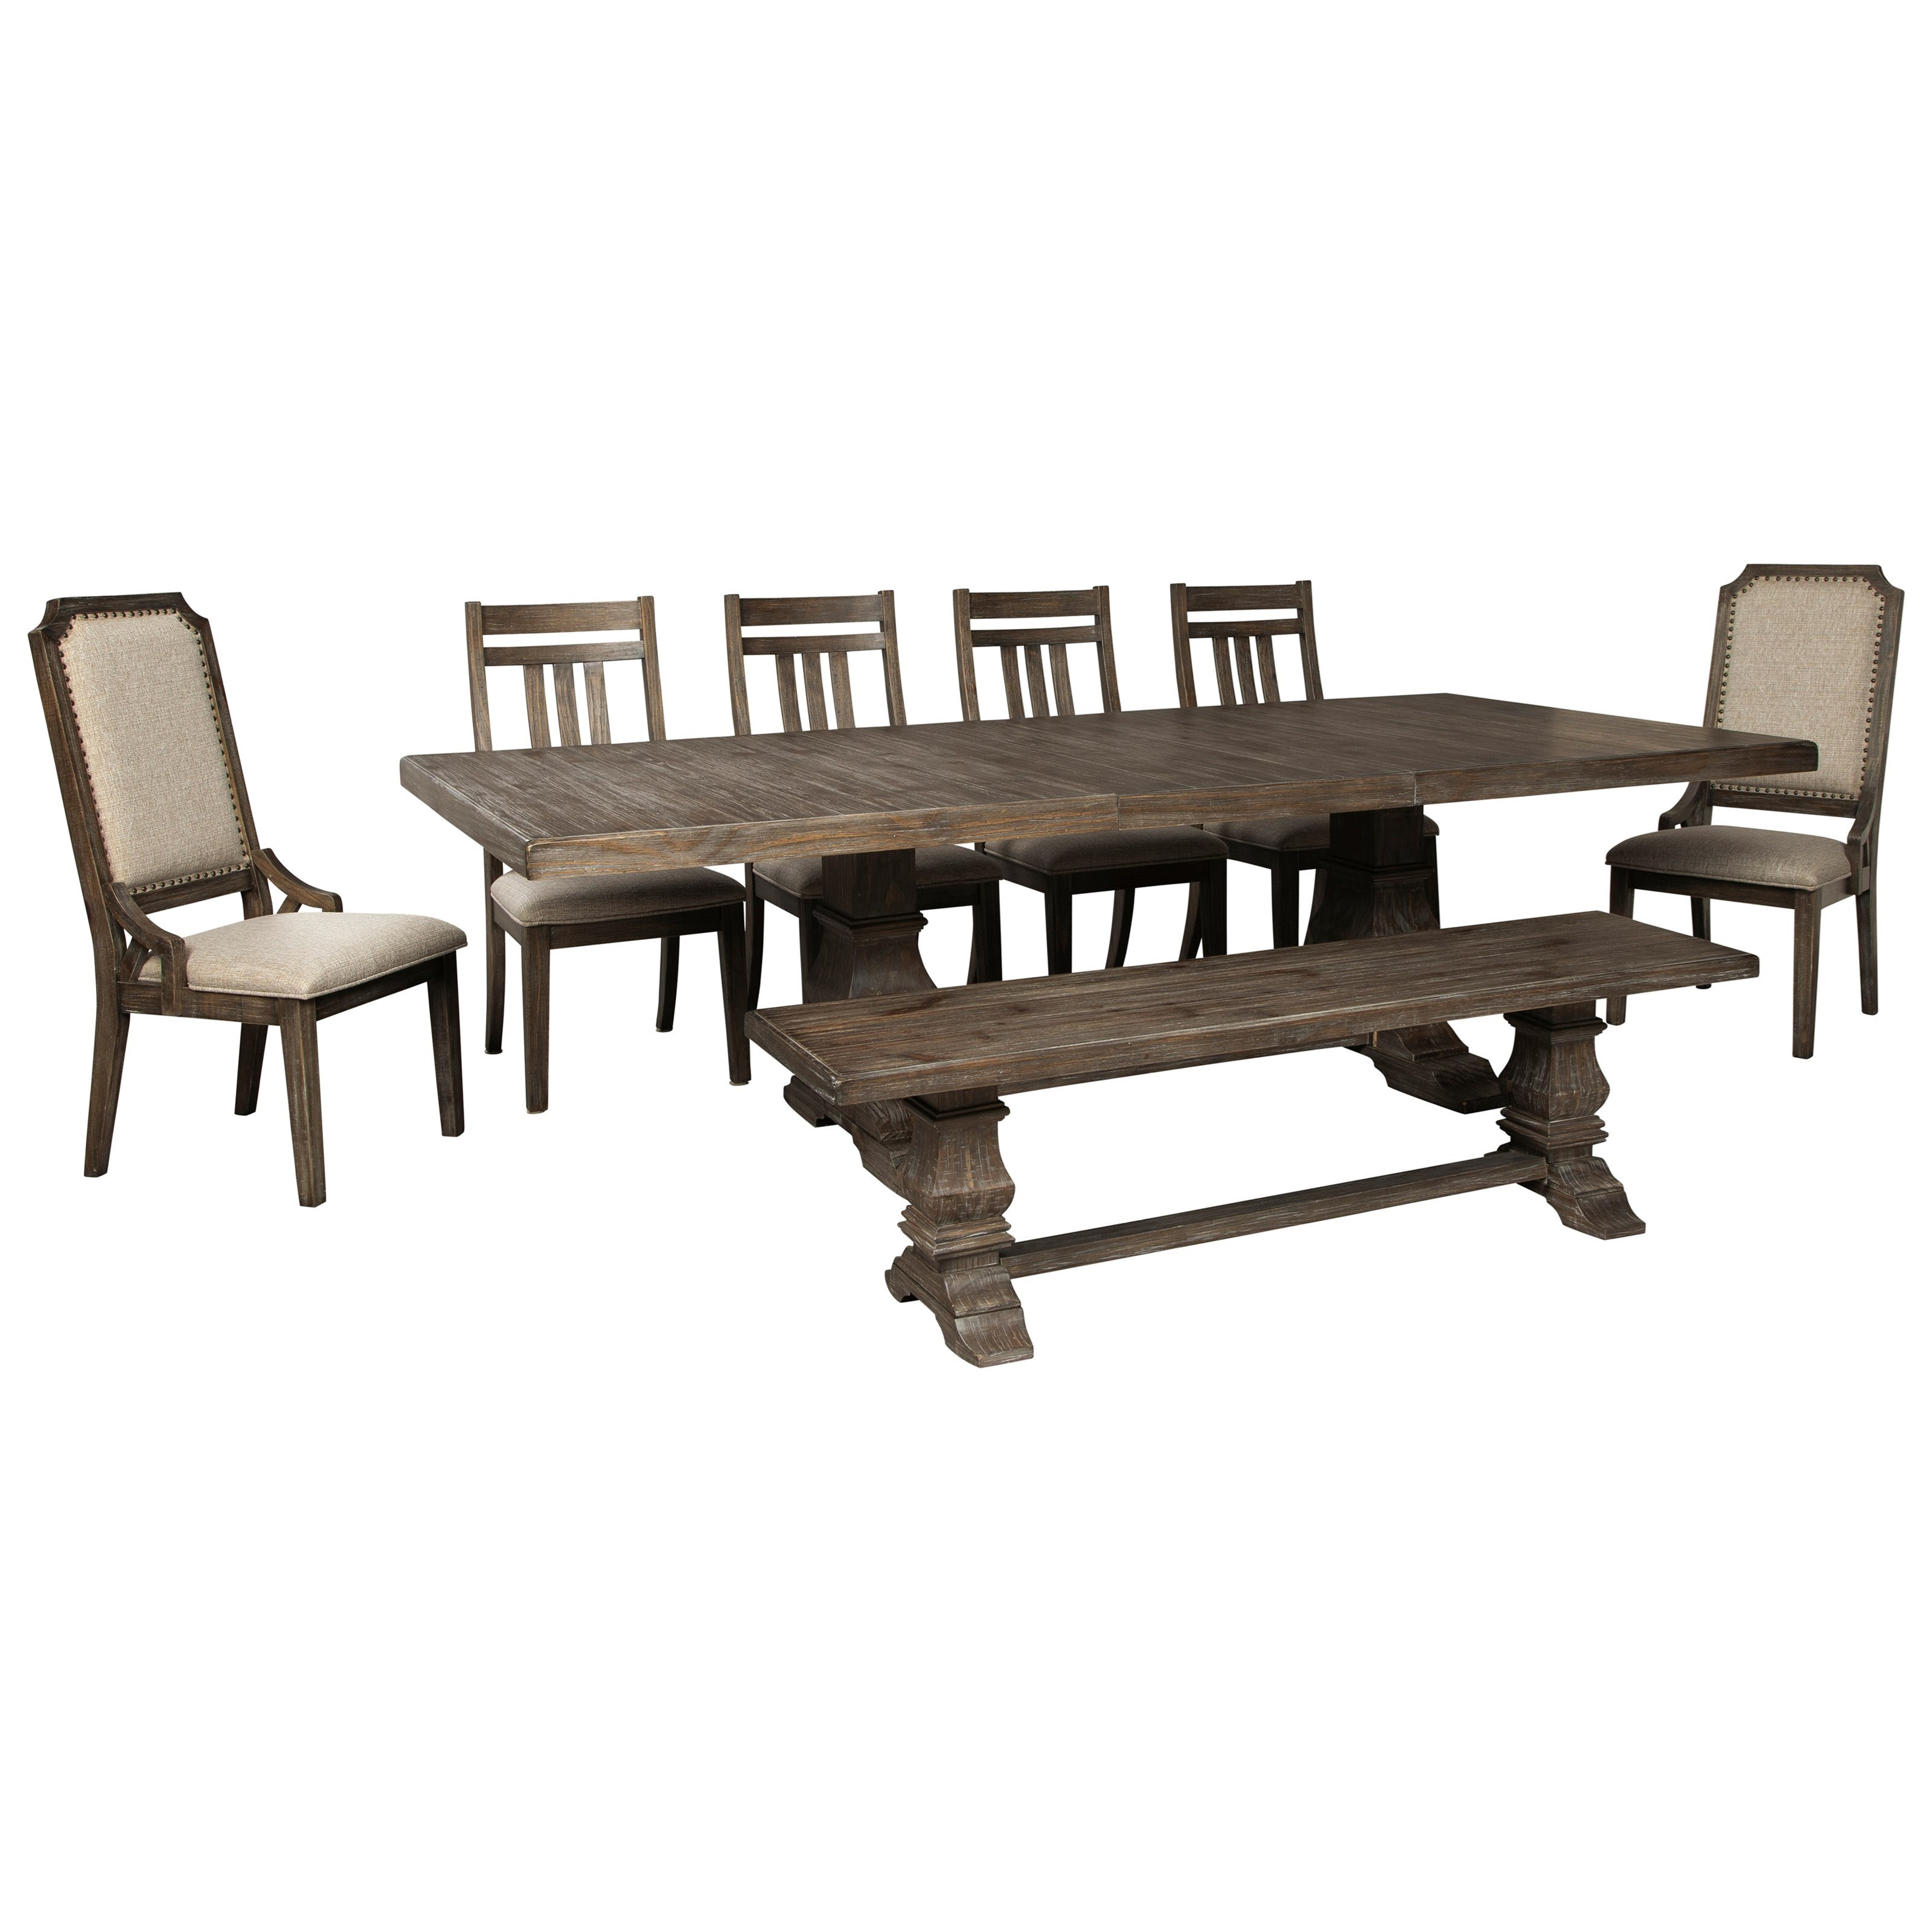 Remarkable Signature Design By Ashley Wyndahl 8 Piece Dining Table Set Ocoug Best Dining Table And Chair Ideas Images Ocougorg